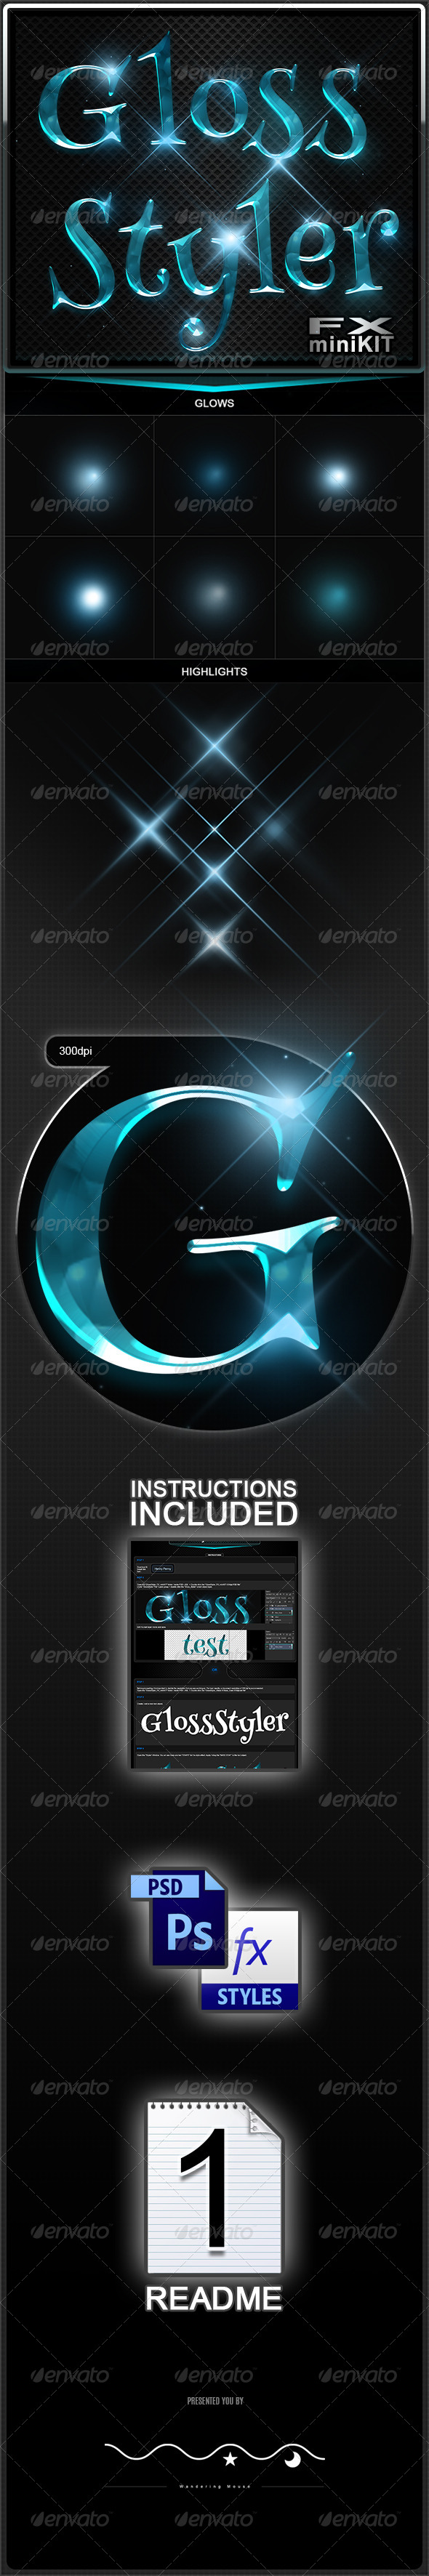 GraphicRiver GlossStyler FX miniKIT 8624952